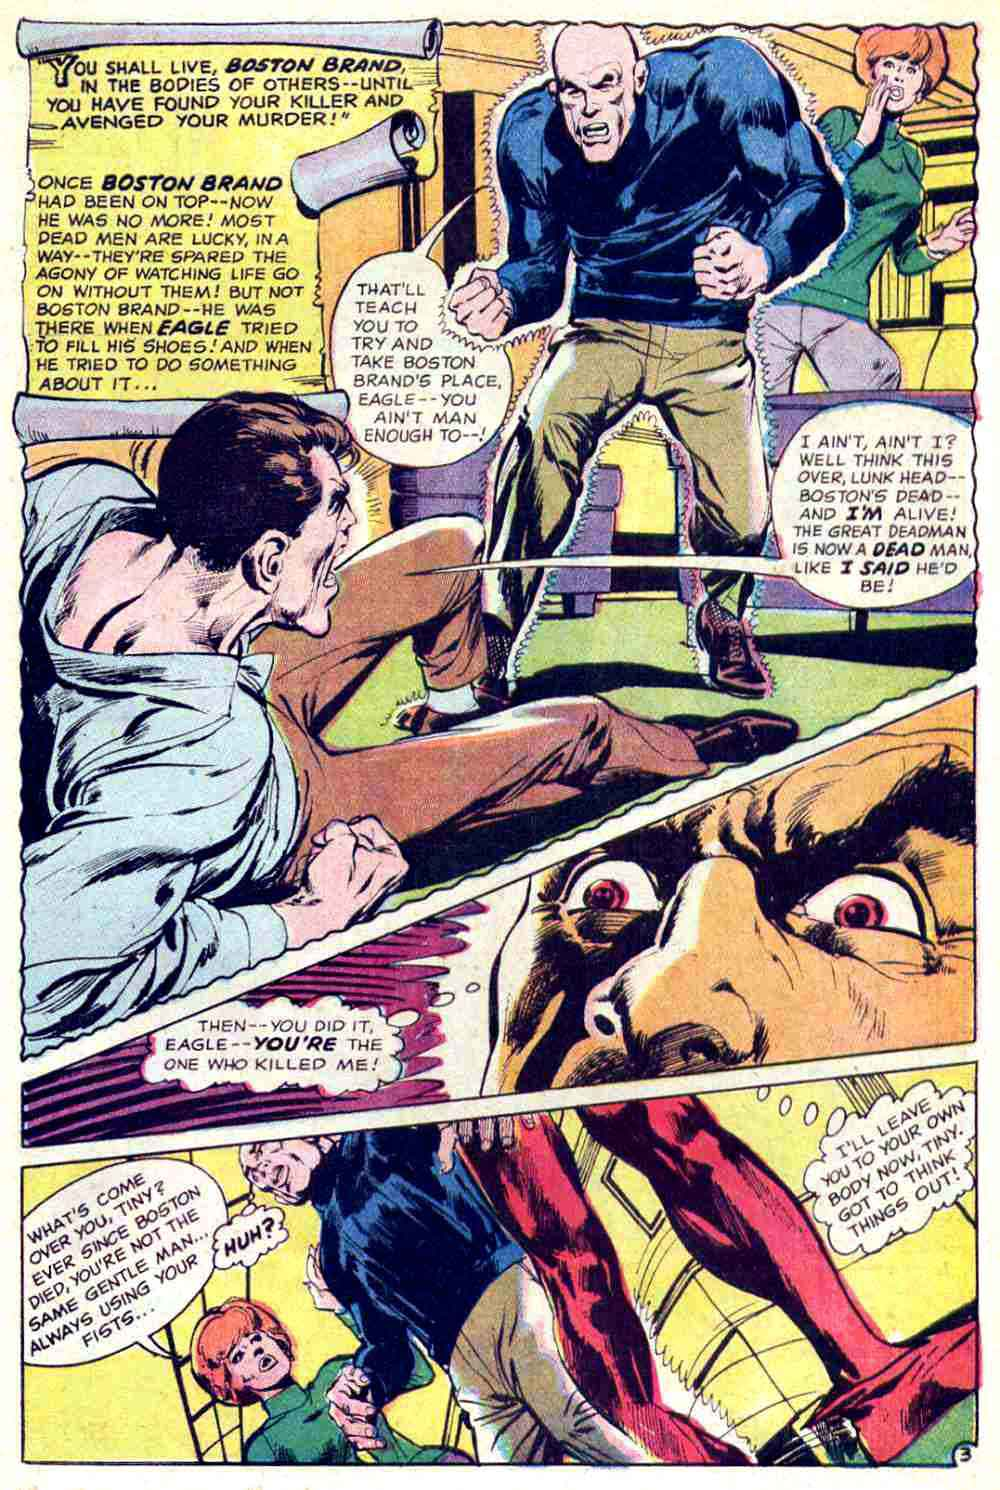 Strange Adventures v1 #209 dc 1960s silver age comic book page art by Neal Adams